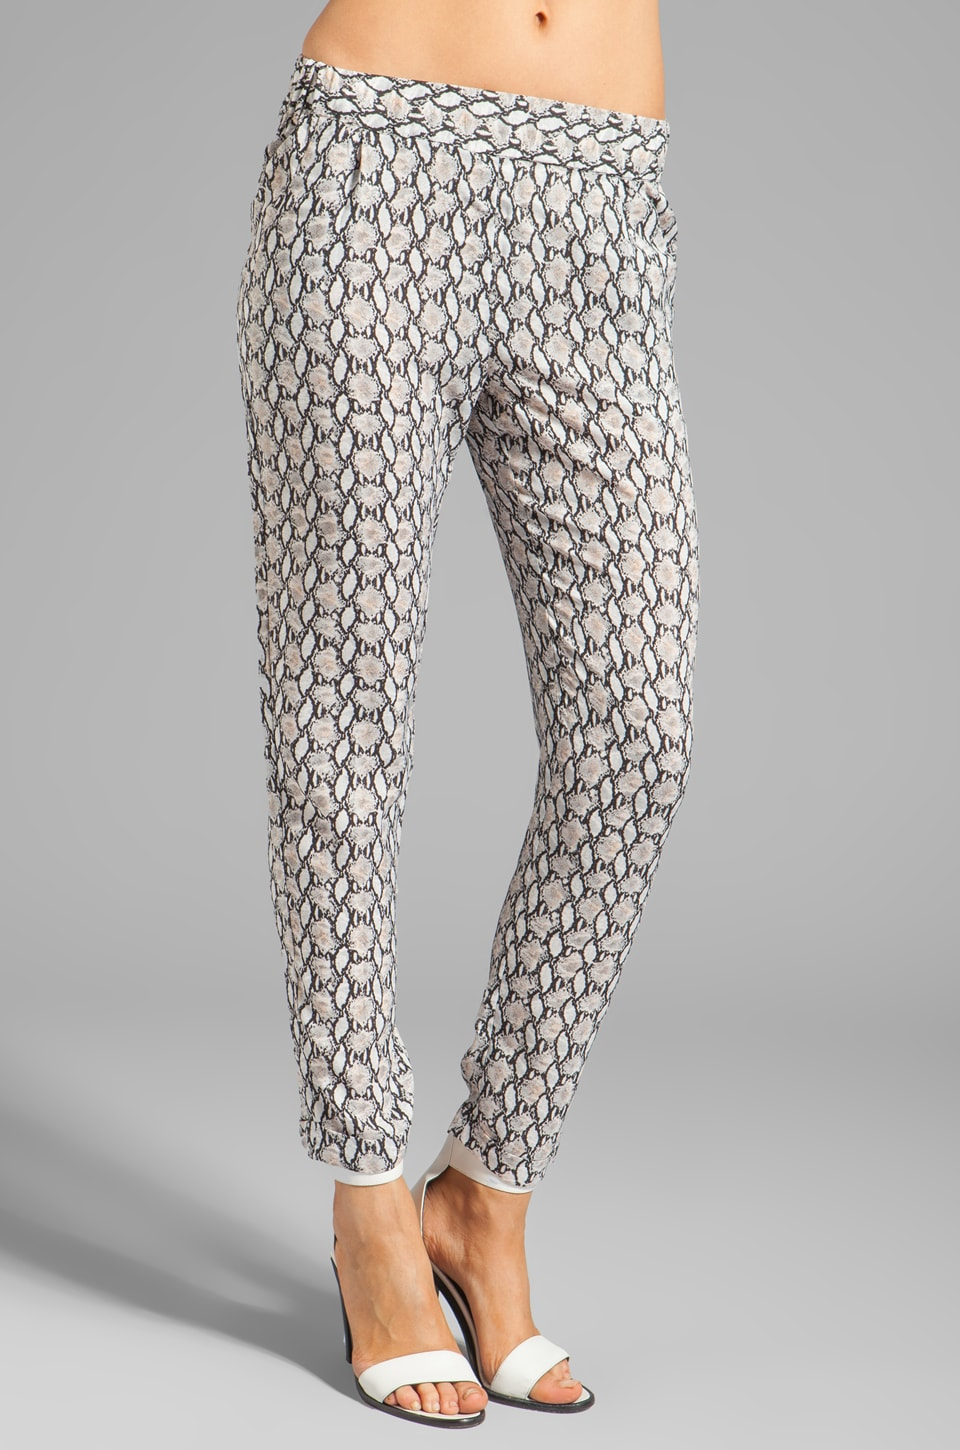 BLAQUE LABEL Pants in Snake Print